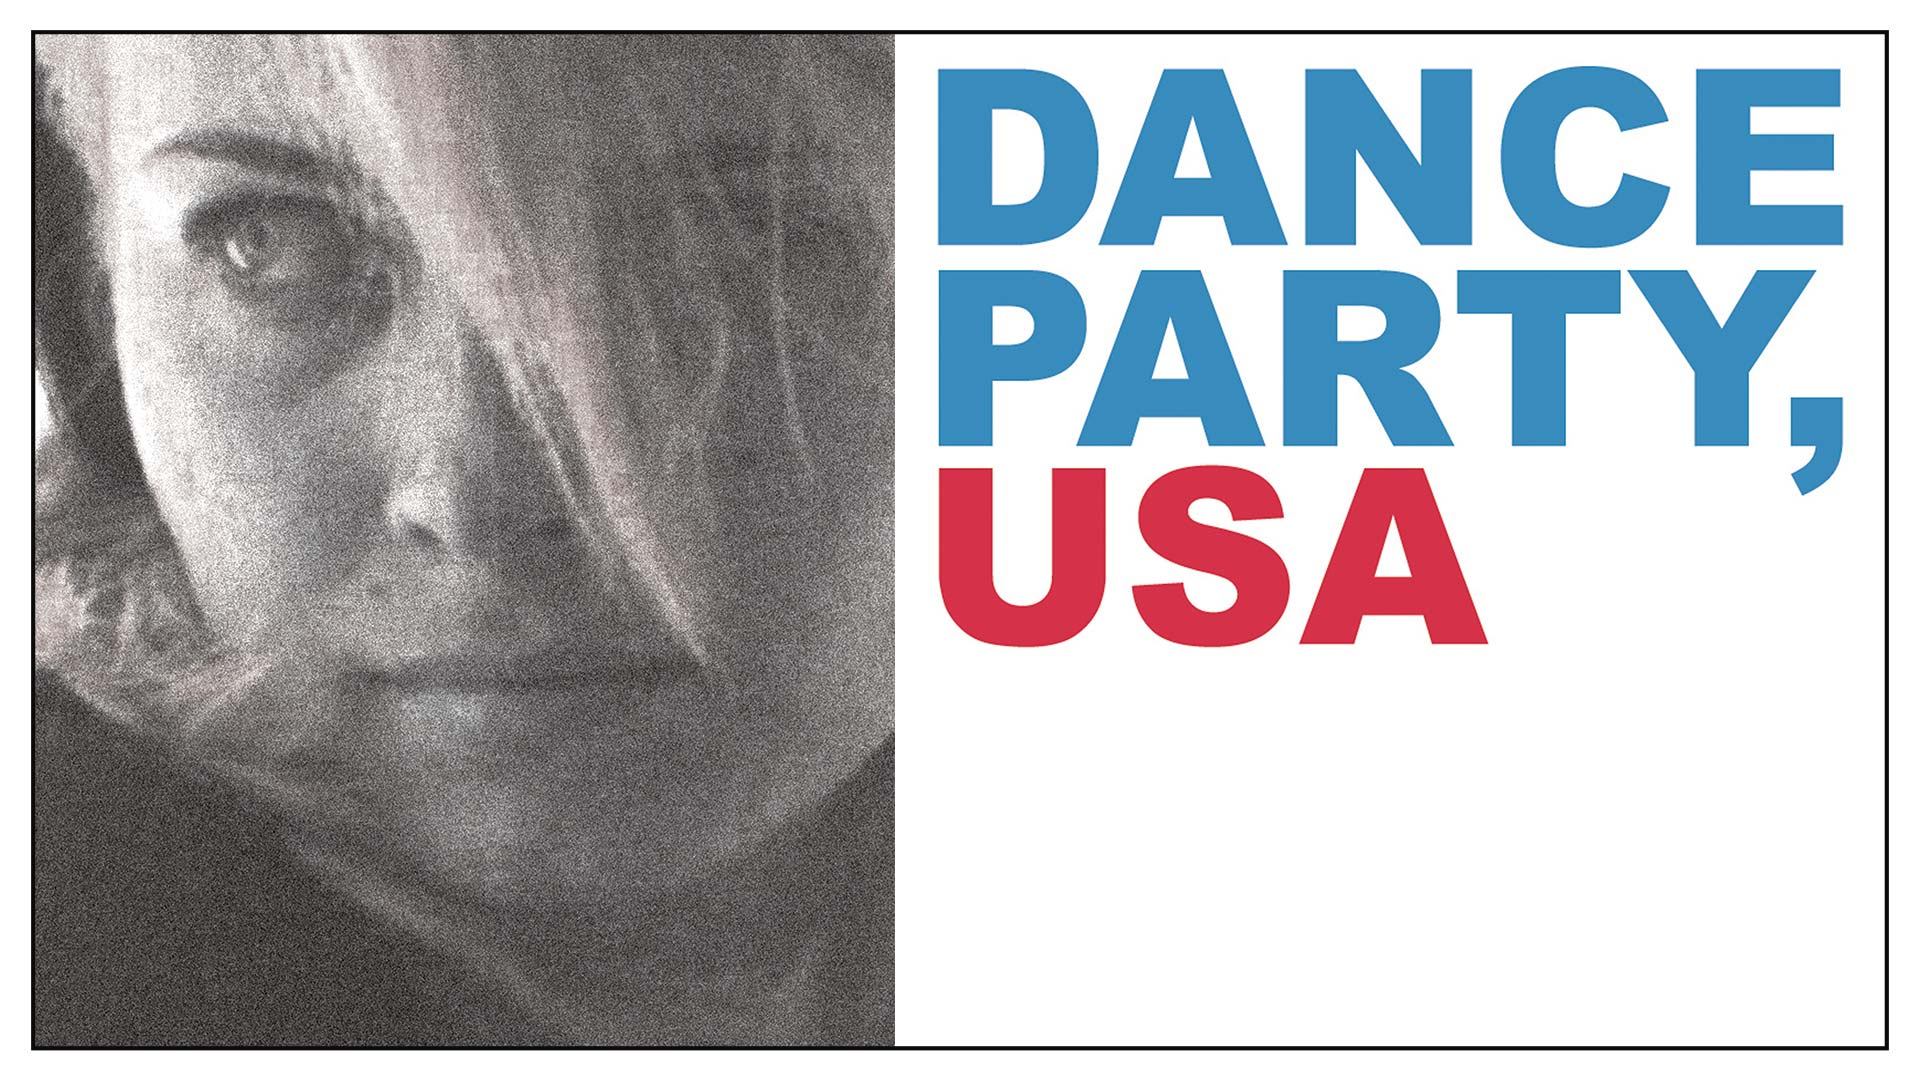 Dance Party USA - image